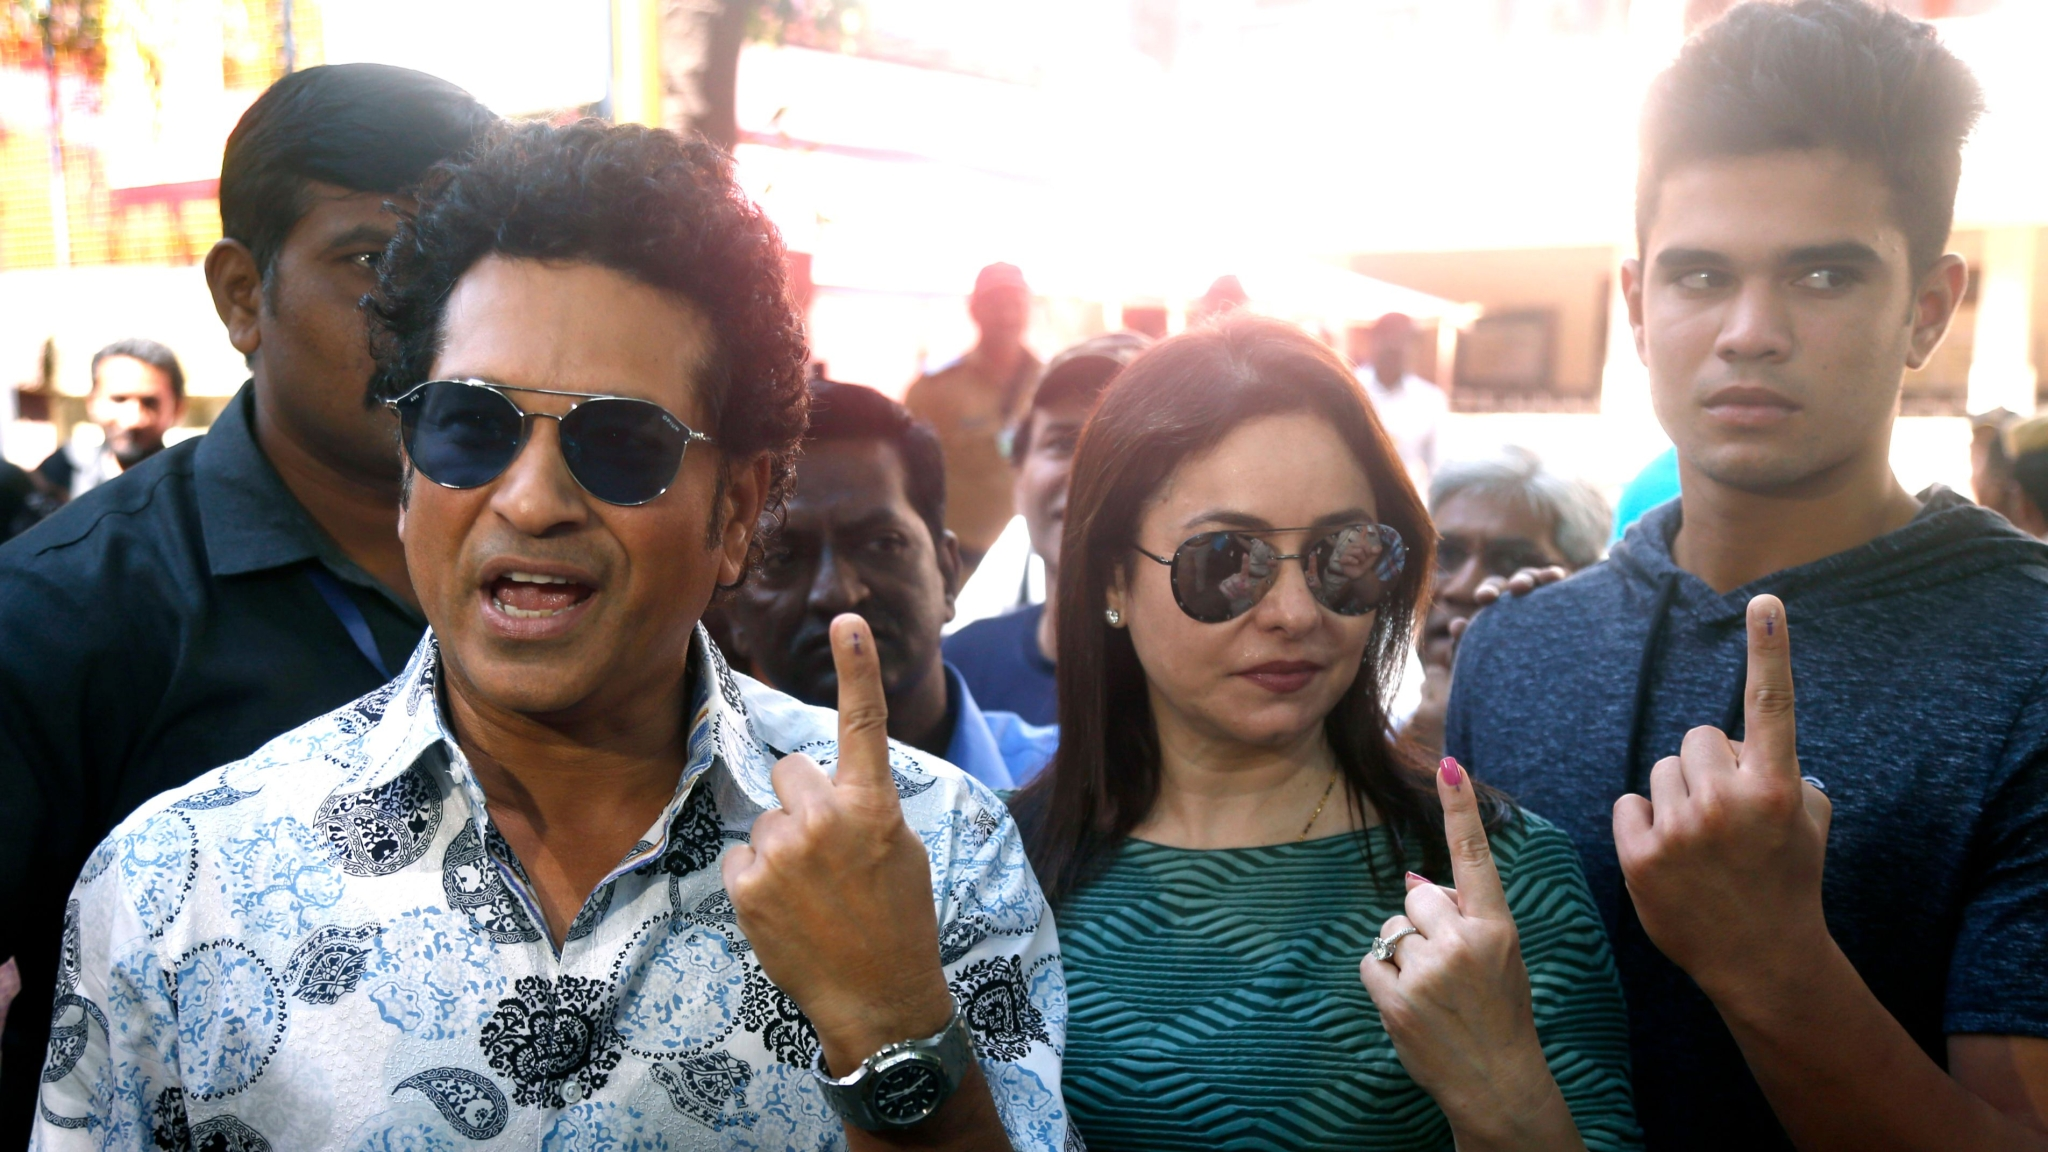 Tendulkar Votes & Urges People to Vote For a 'Better Tomorrow'